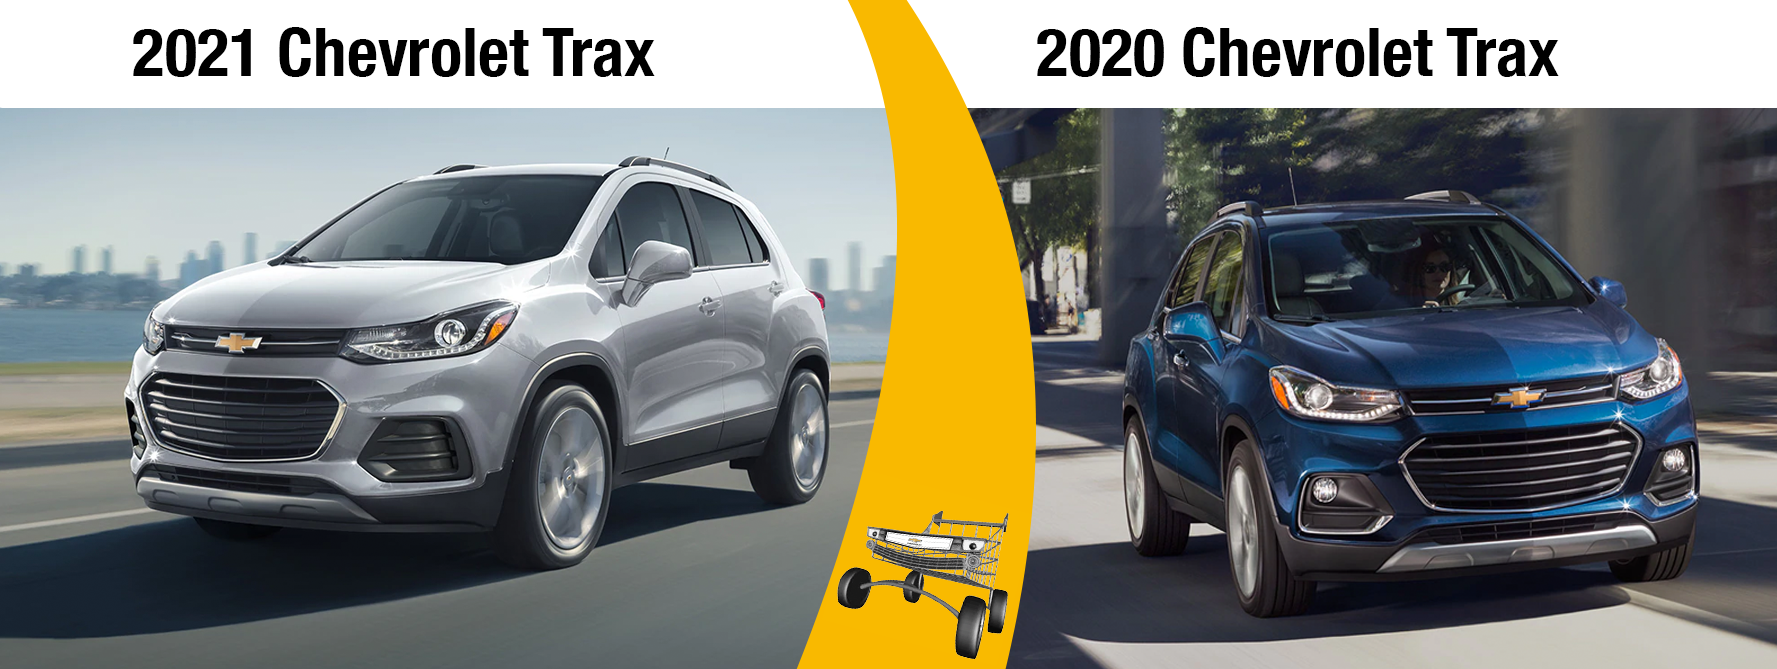 2021 Chevy Trax vs 2020 Chevy Trax